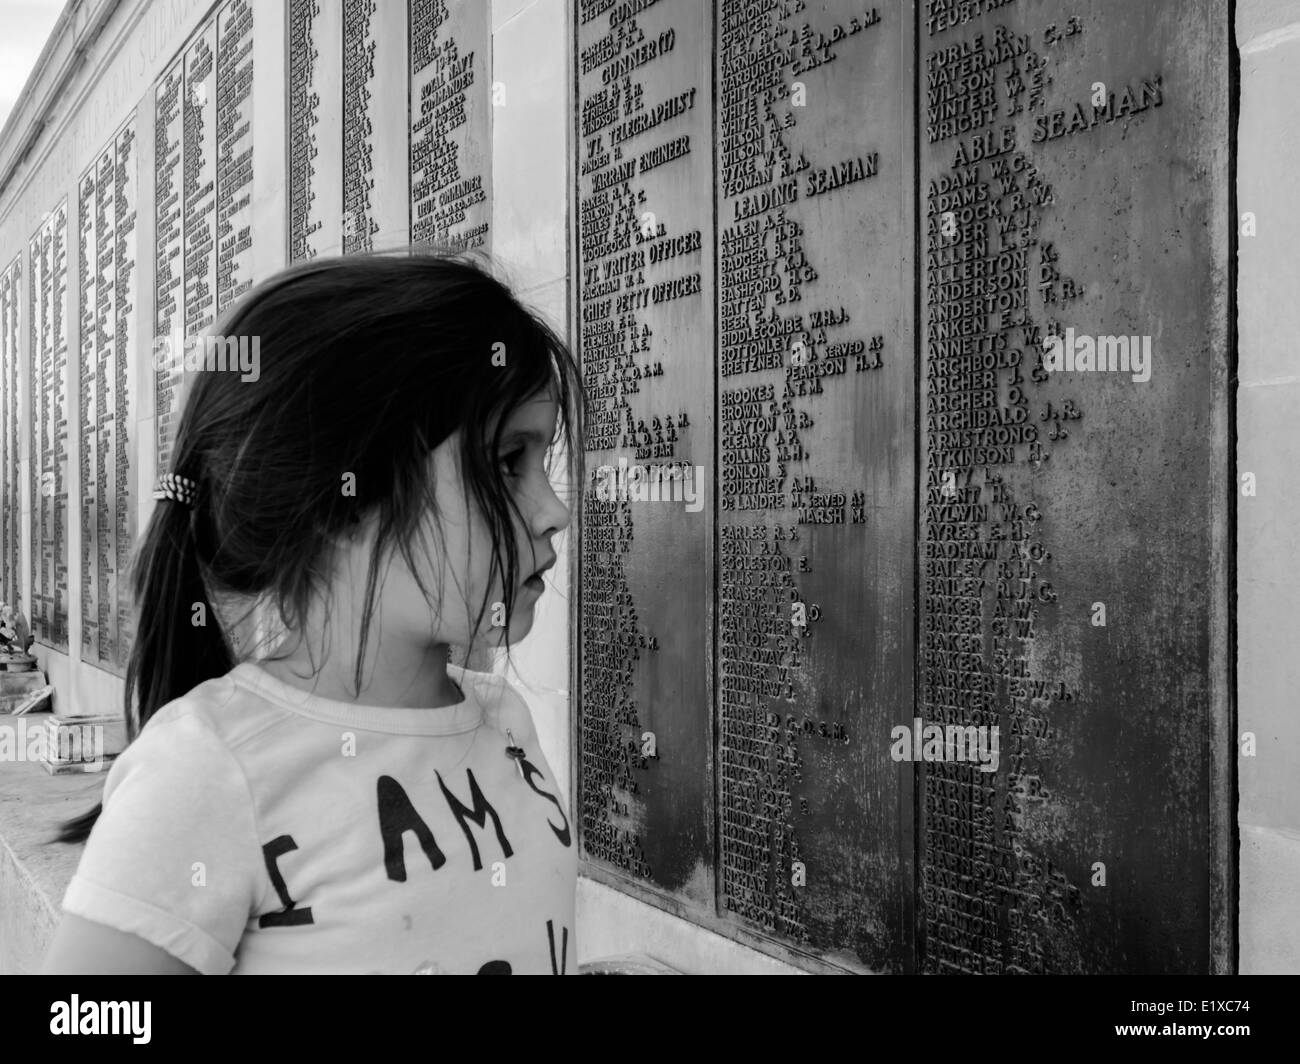 a-young-girl-reads-the-list-of-names-on-the-royal-navy-war-memorial-E1XC74.jpg